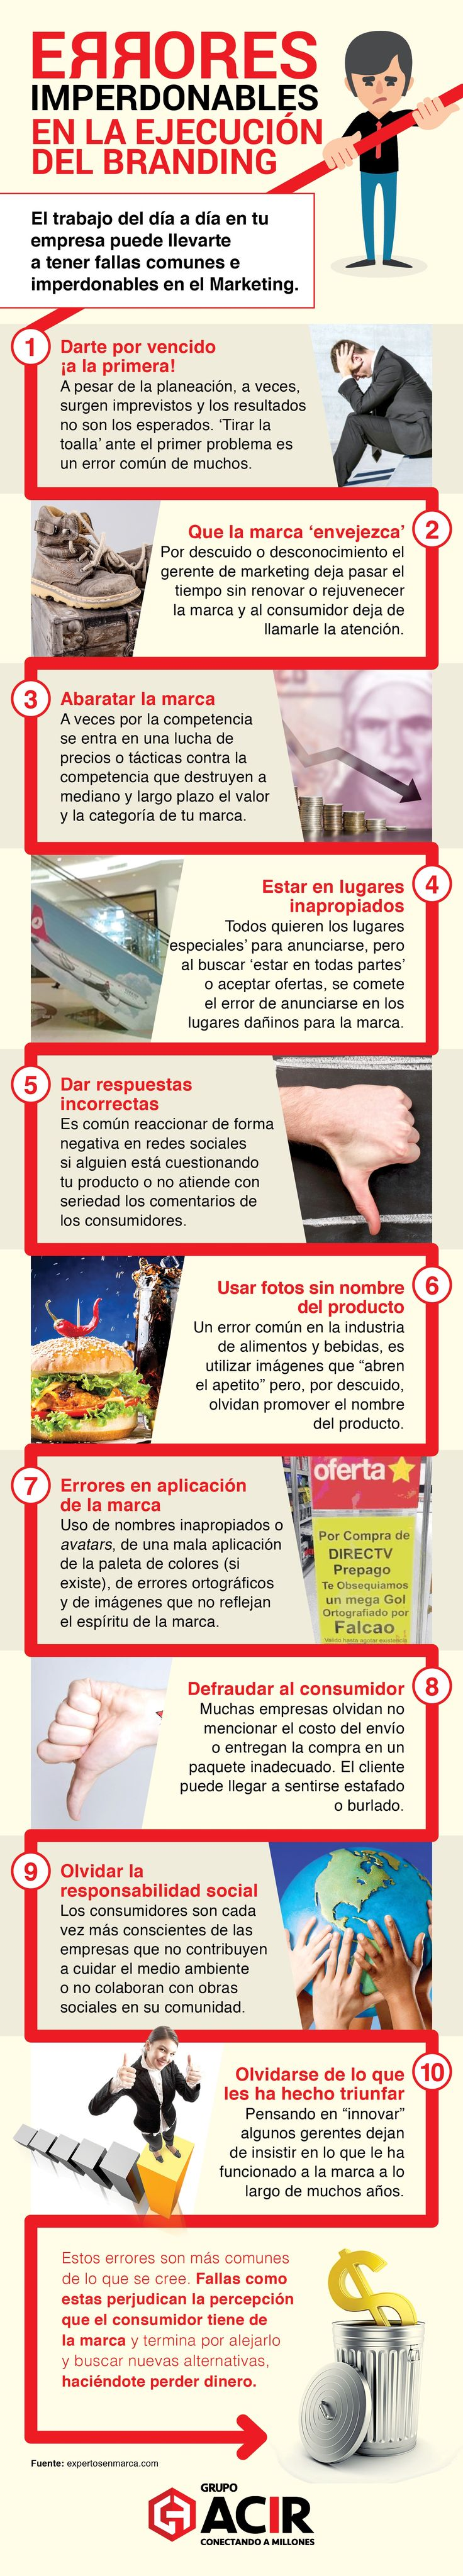 10 Errores imperdonables en la ejecución del branding #infografía #infographic #marketing